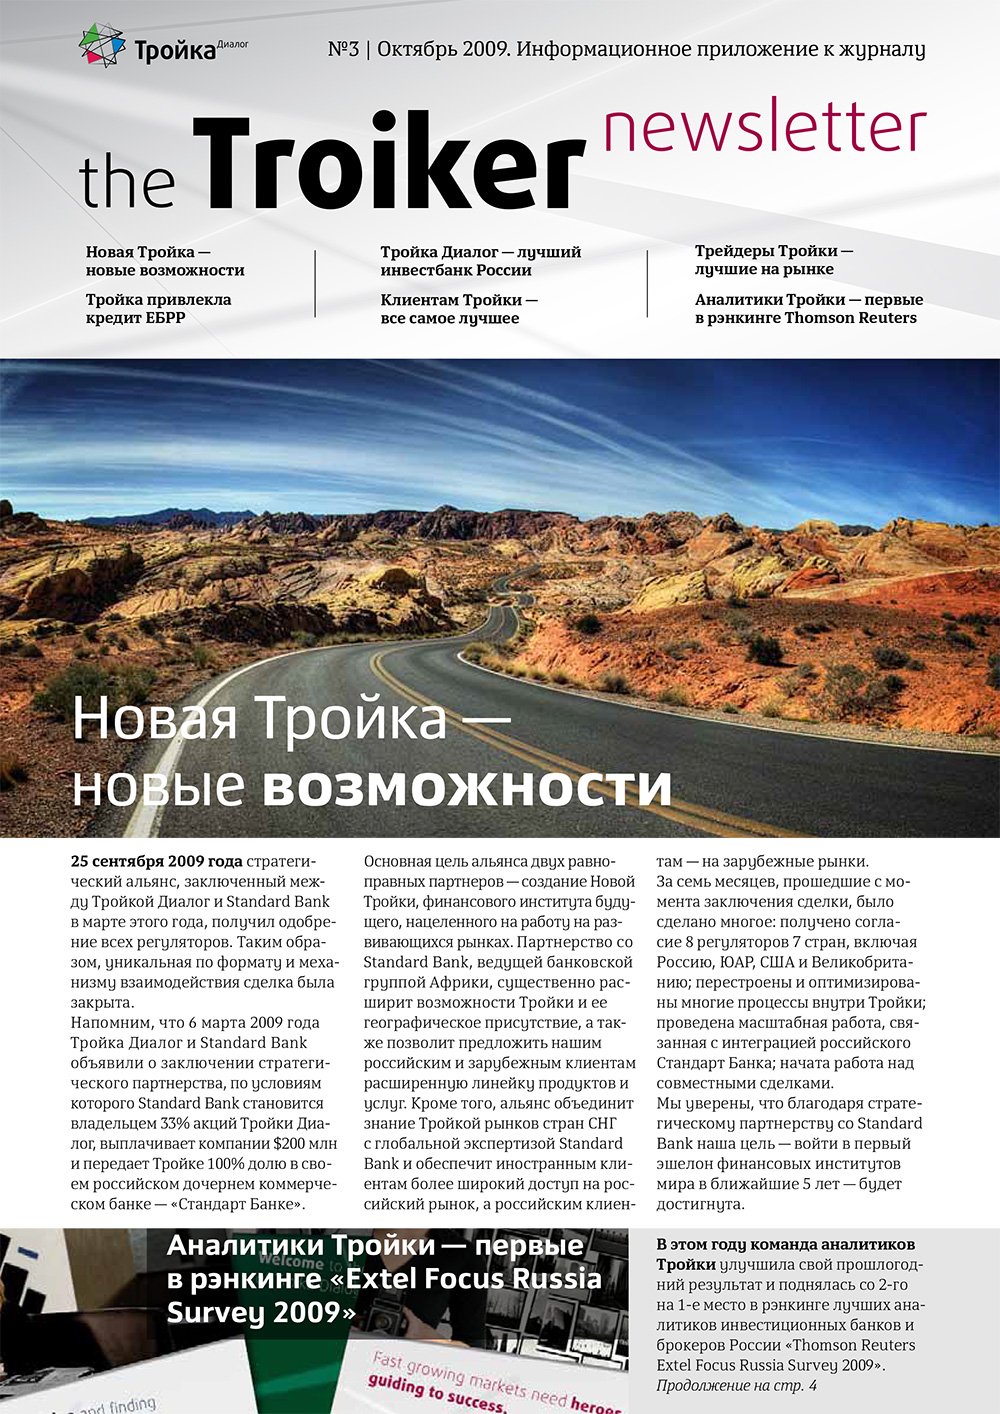 Newsletter oct 09 2 rus 1